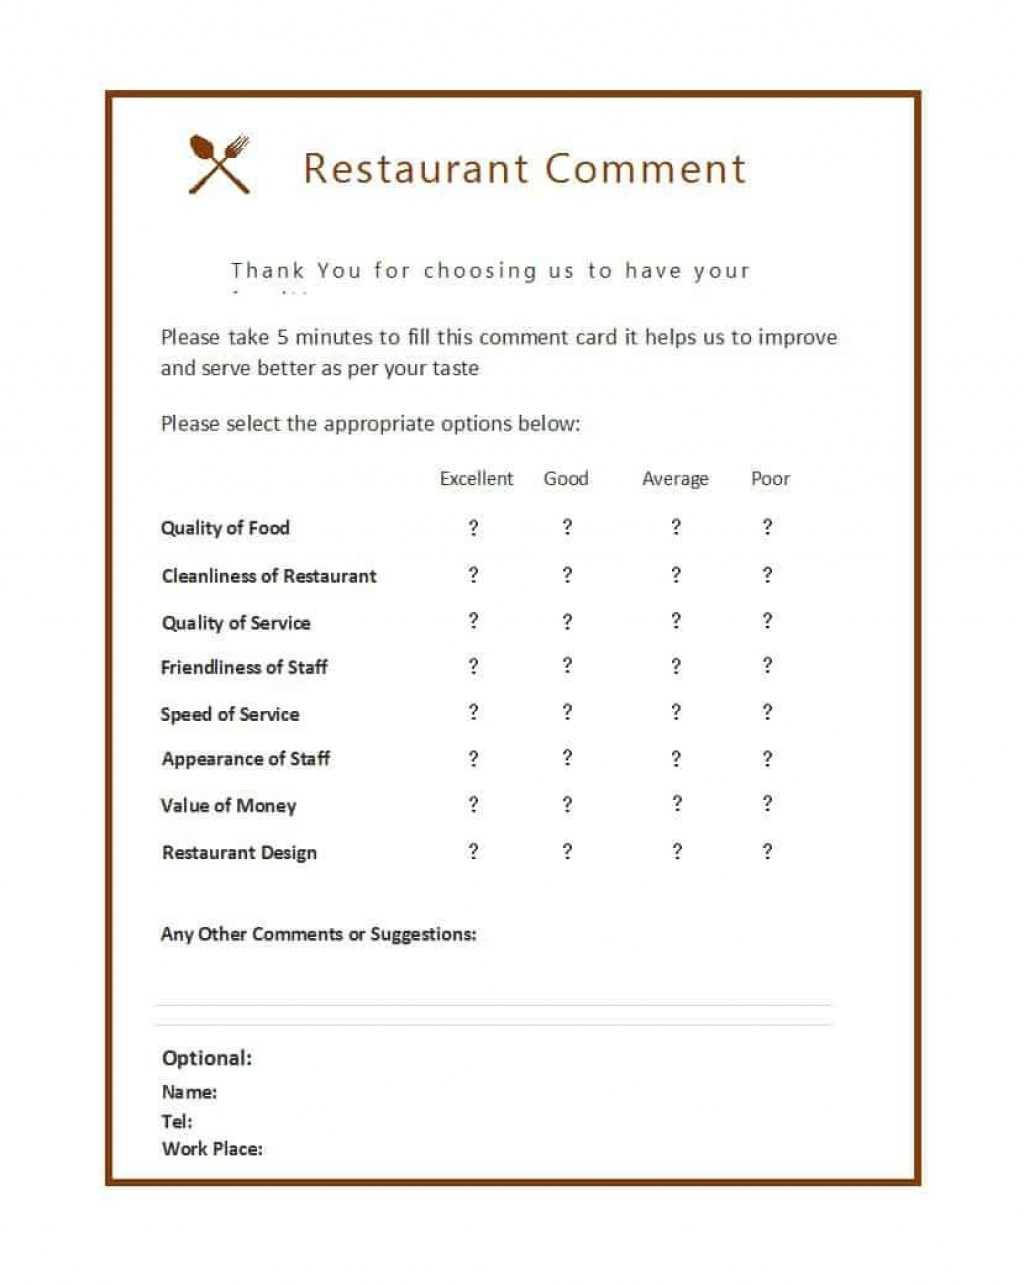 008 Remarkable Restaurant Customer Comment Card Template Inspiration  For Word FreeLarge